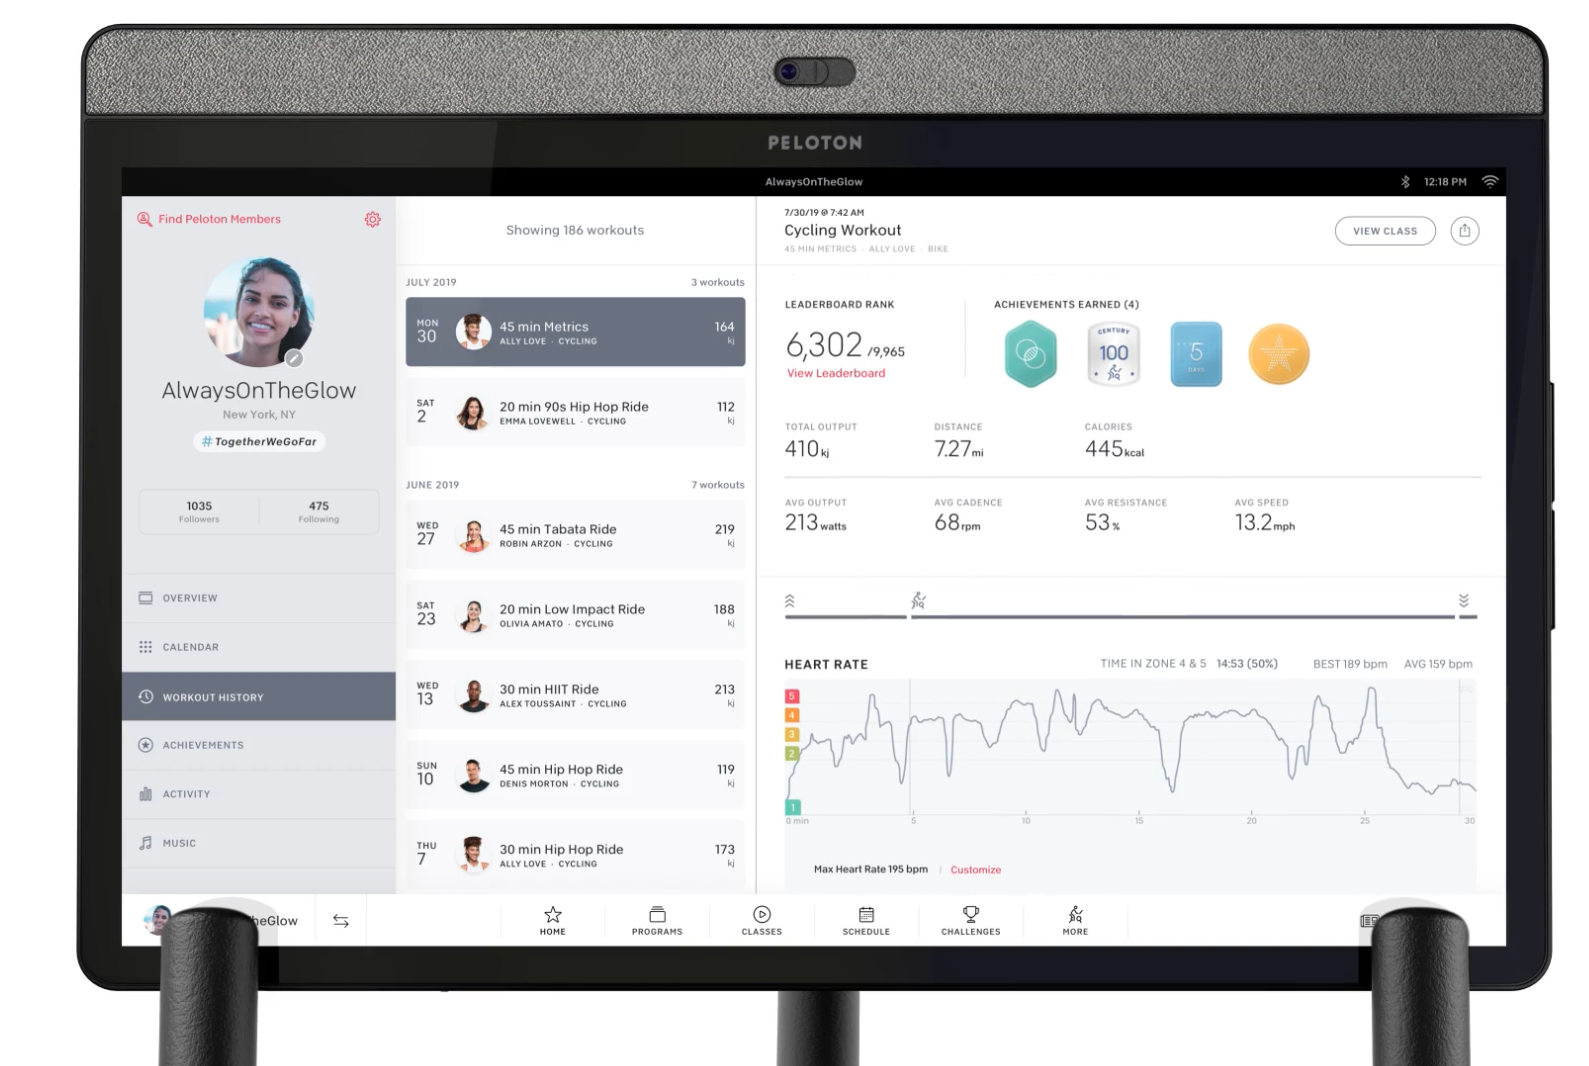 Peloton data analytics